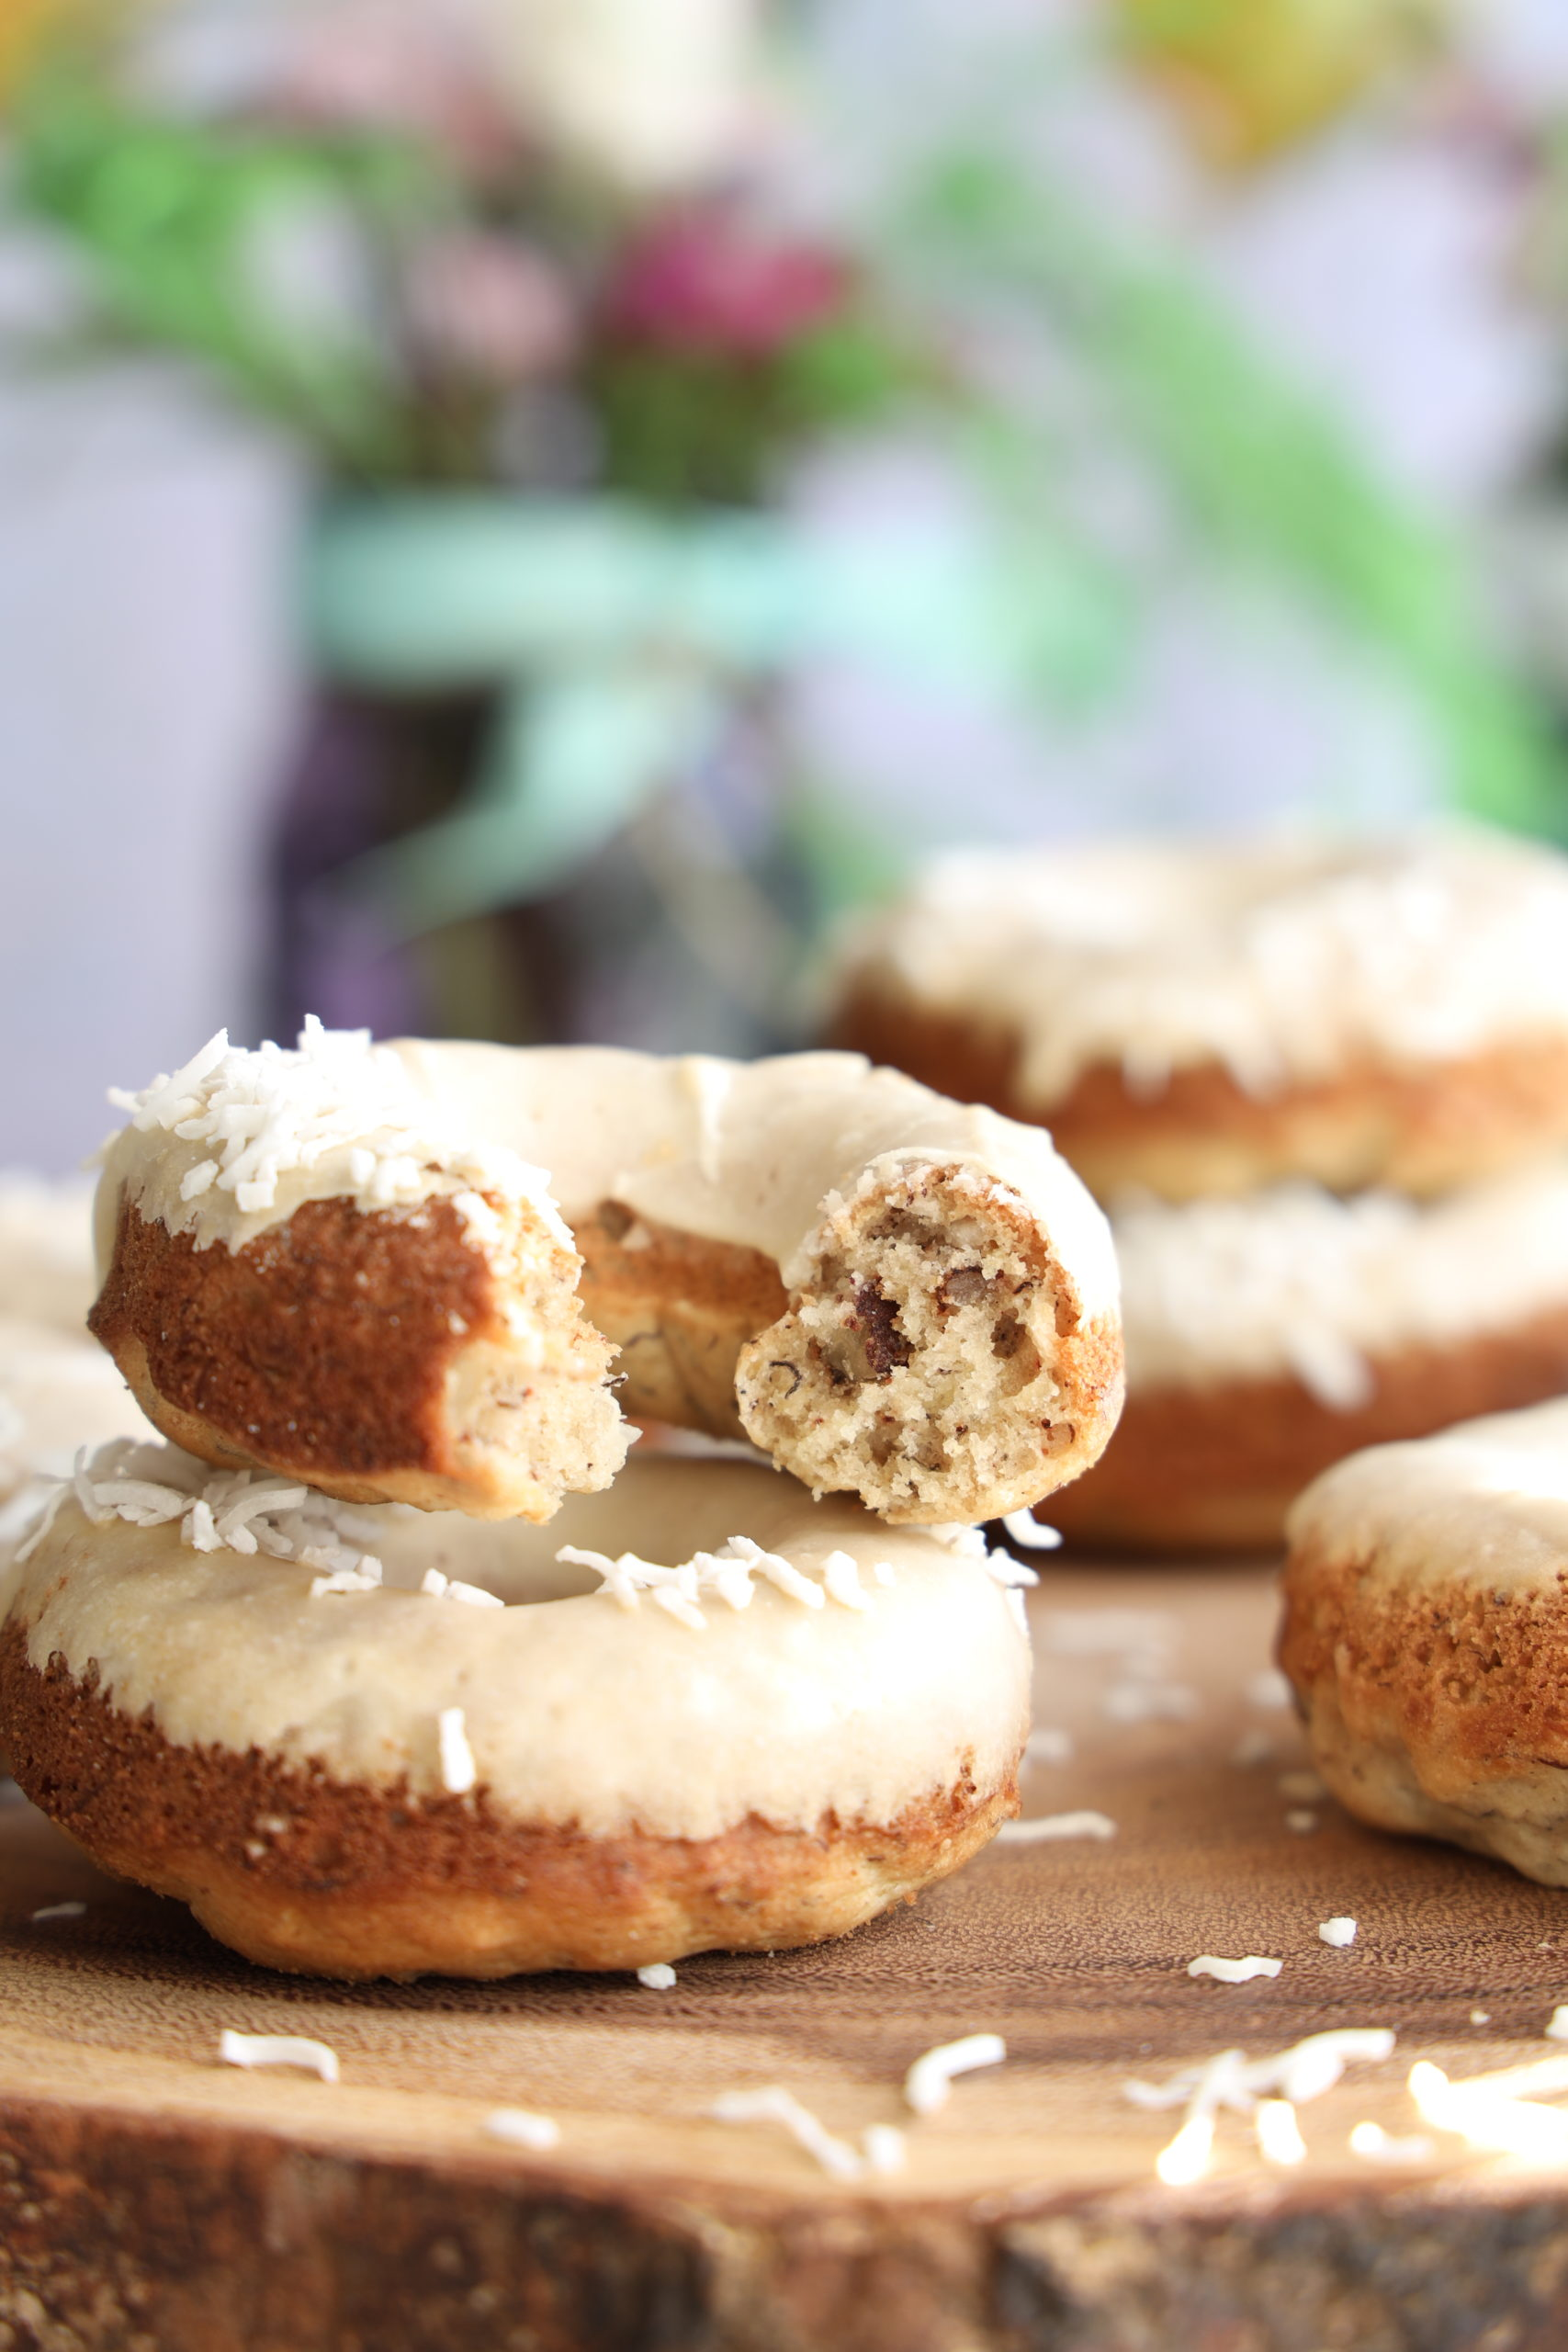 A gluten-free donut inspired by the southern recipe for Hummingbird Cake. Inside the donuts are bananas, pineapple, pecans and spices.